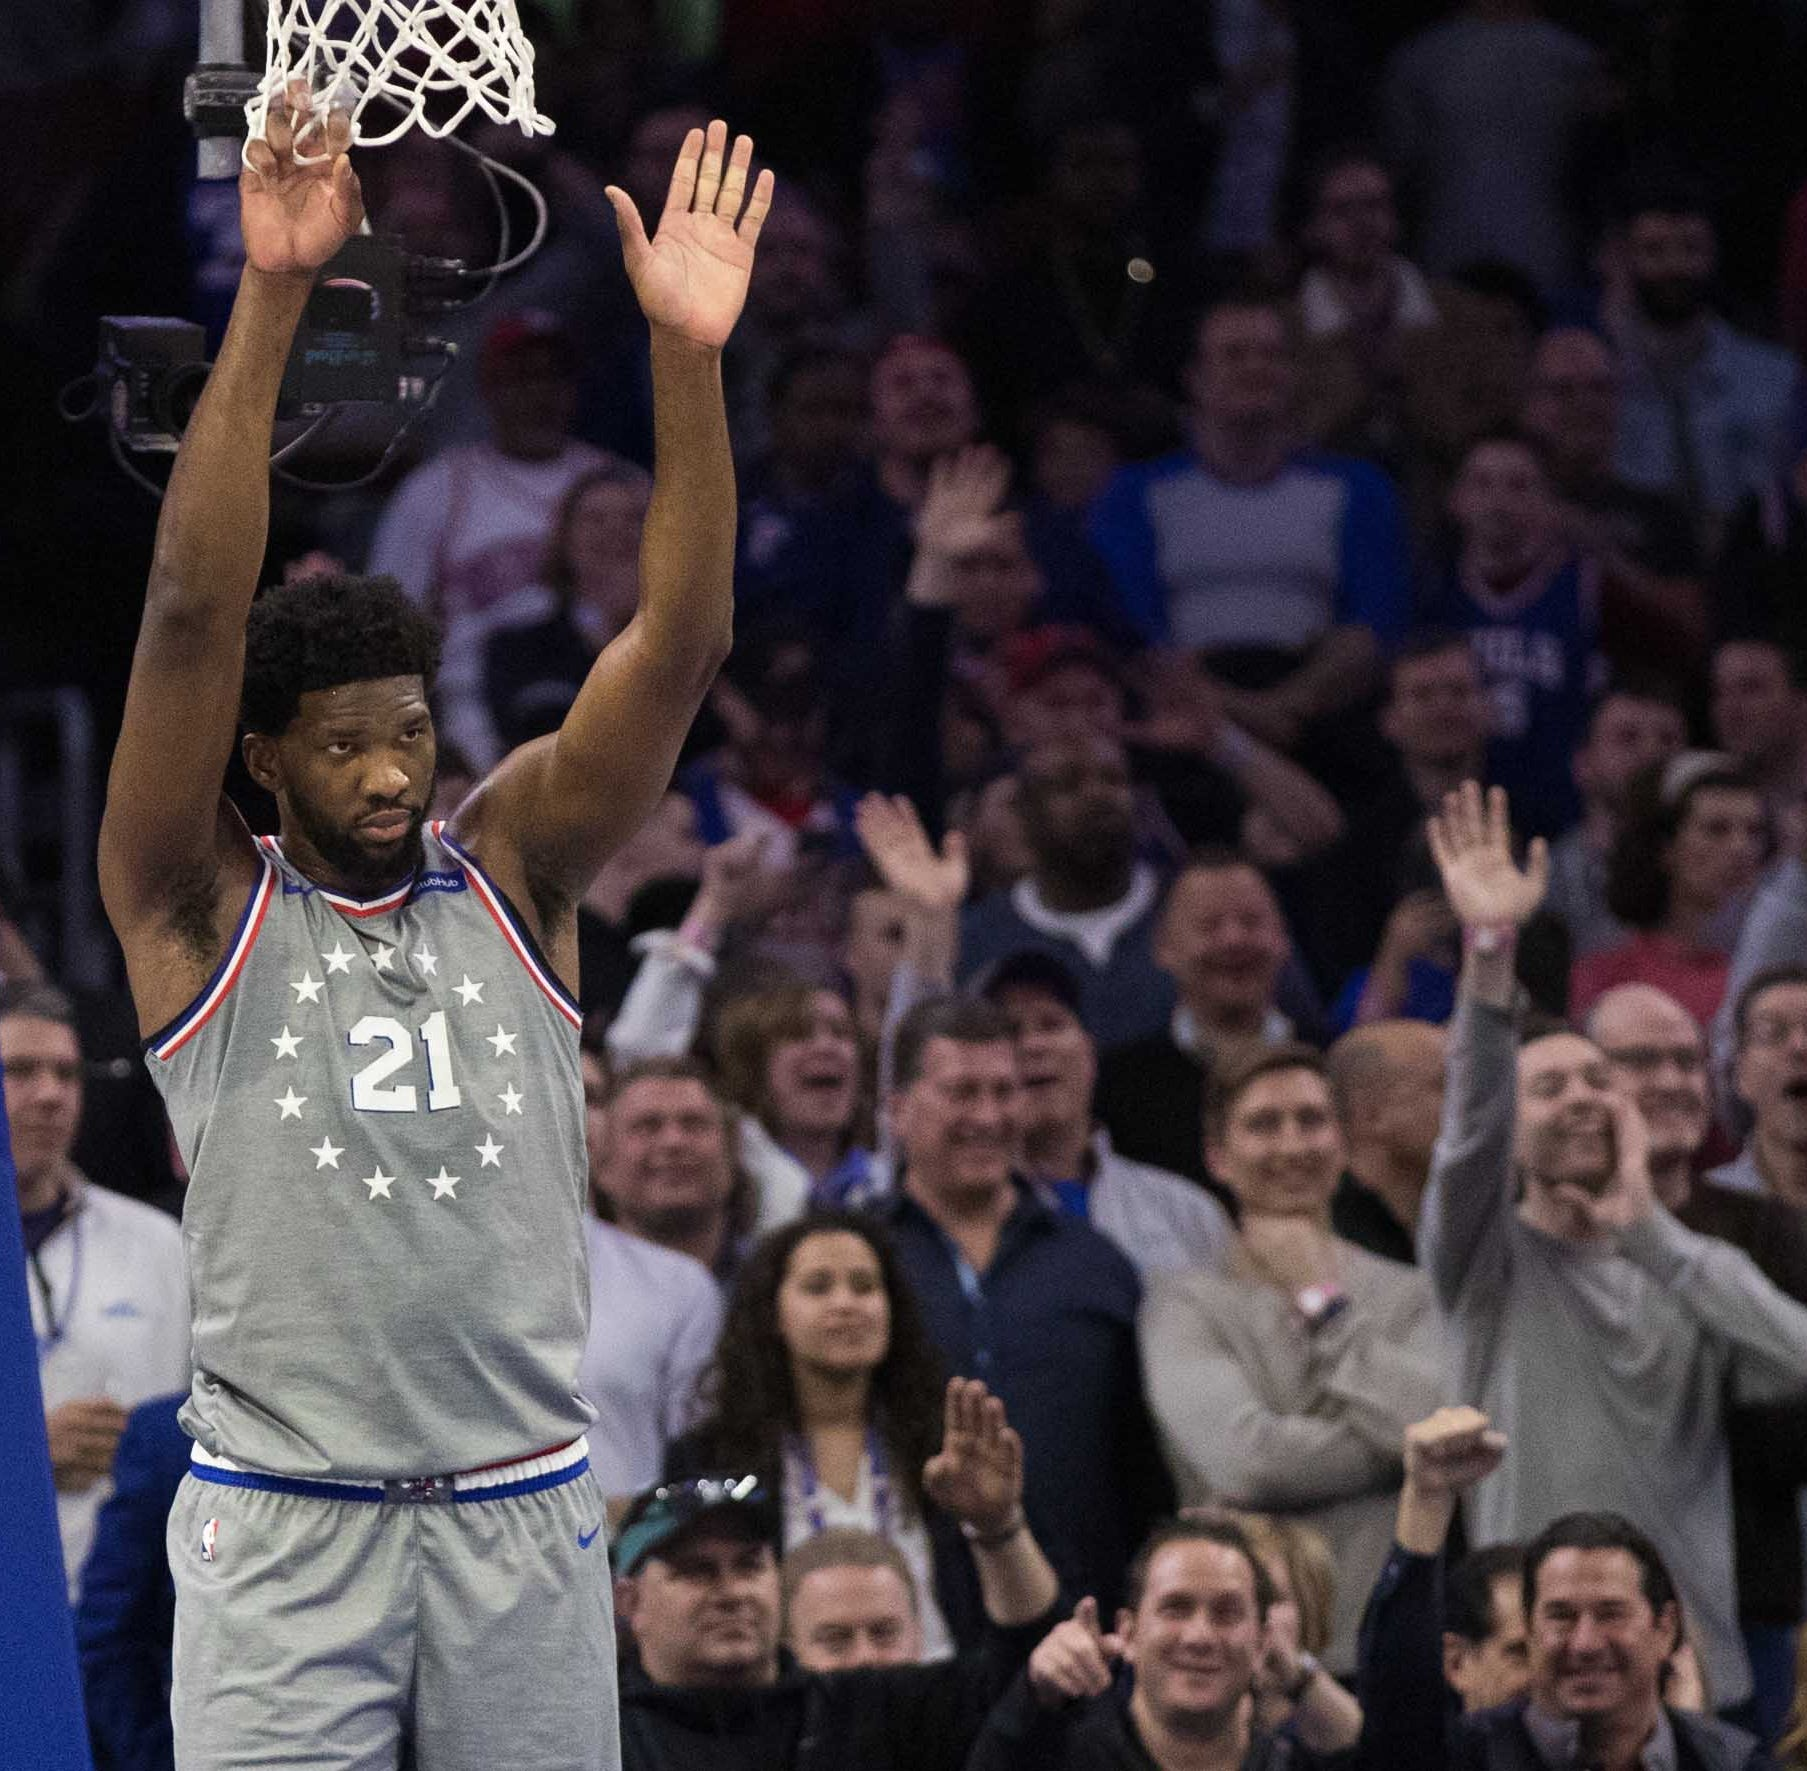 As Game 1 of playoffs looms, Sixers are again being vague about Embiid's health